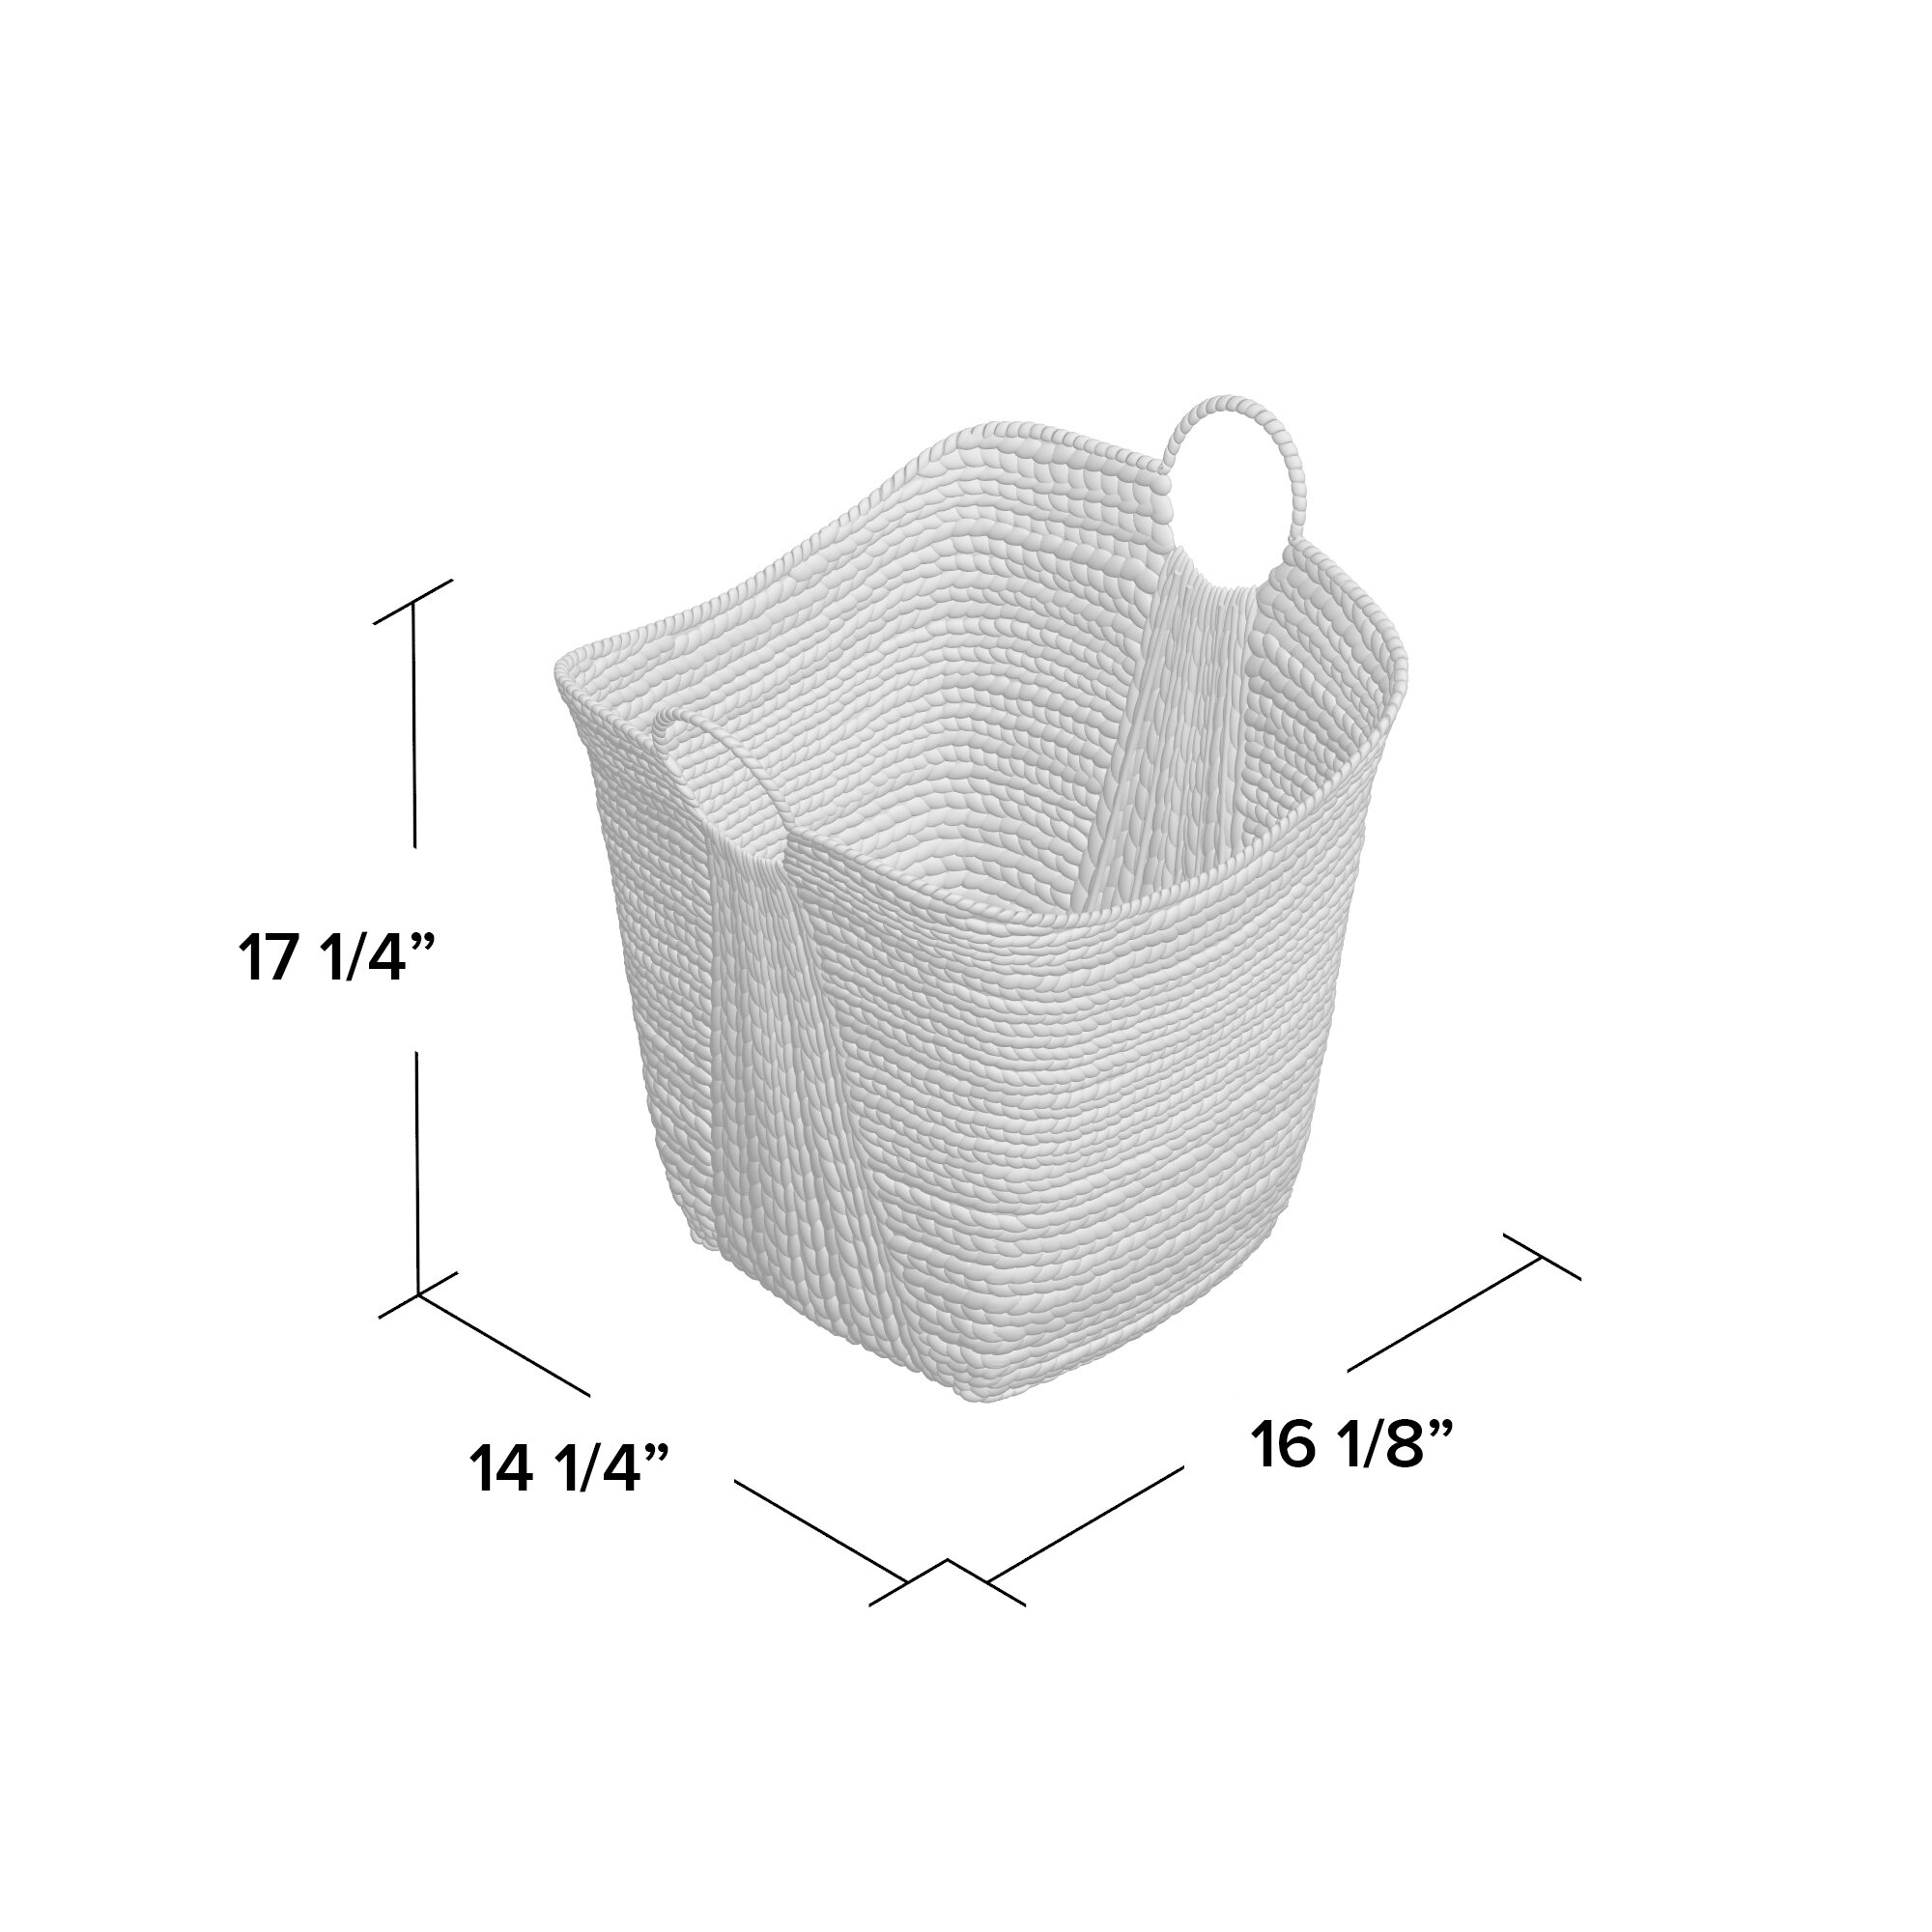 White wicker baskets with handle - August Grove Reg Theroux Tall Water Hyacinth Wicker Basket With Handles